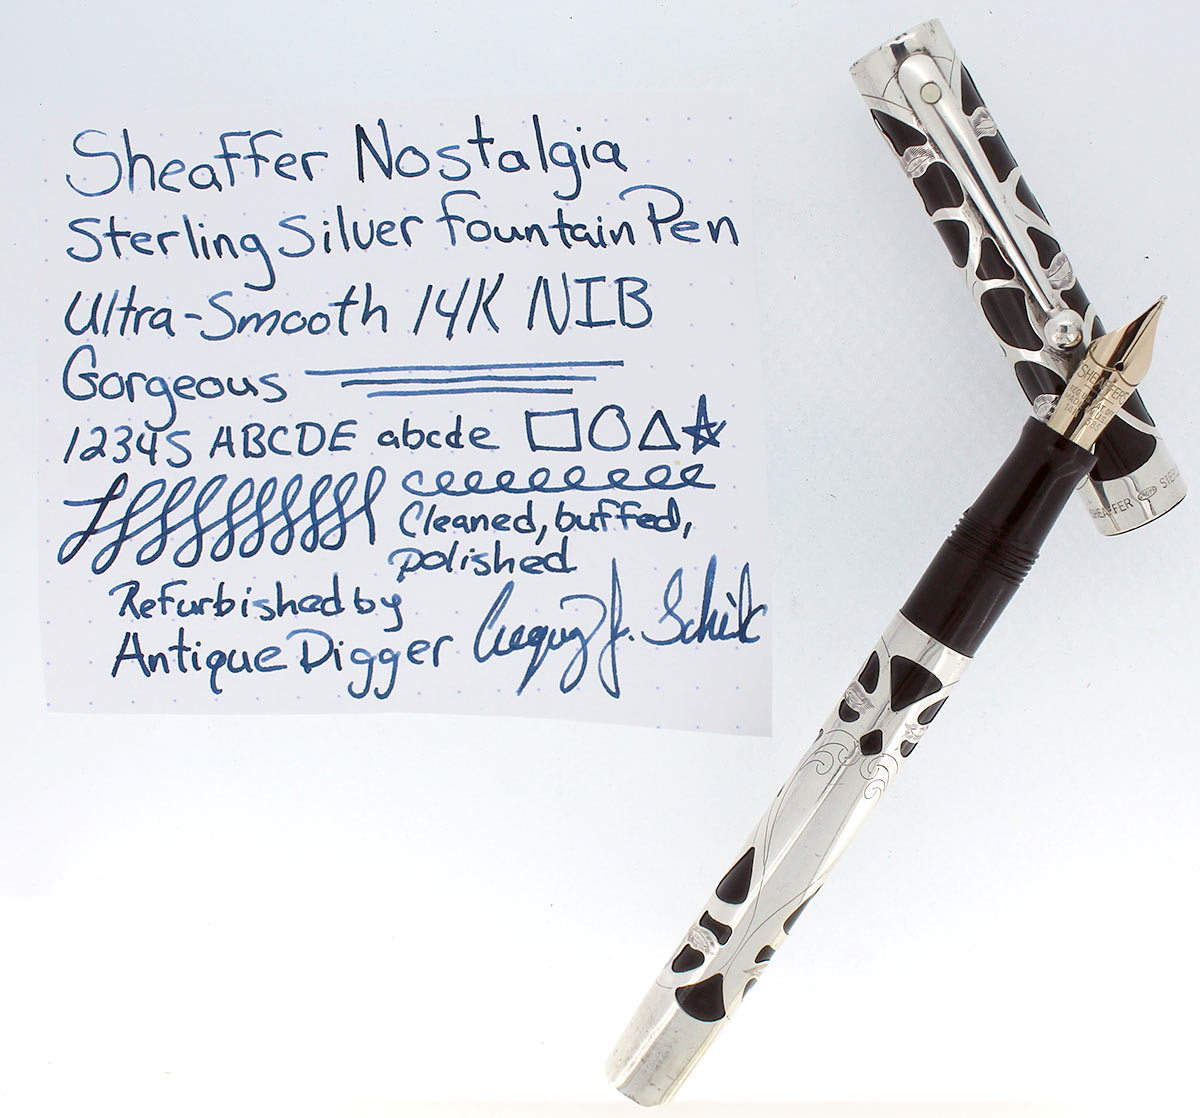 SHEAFFER NOSTALGIA STERLING SILVER FOUNTAIN PEN 14K SMOOTH NIB WITH BOX AND PAPERS OFFERED BY ANTIQUE DIGGER